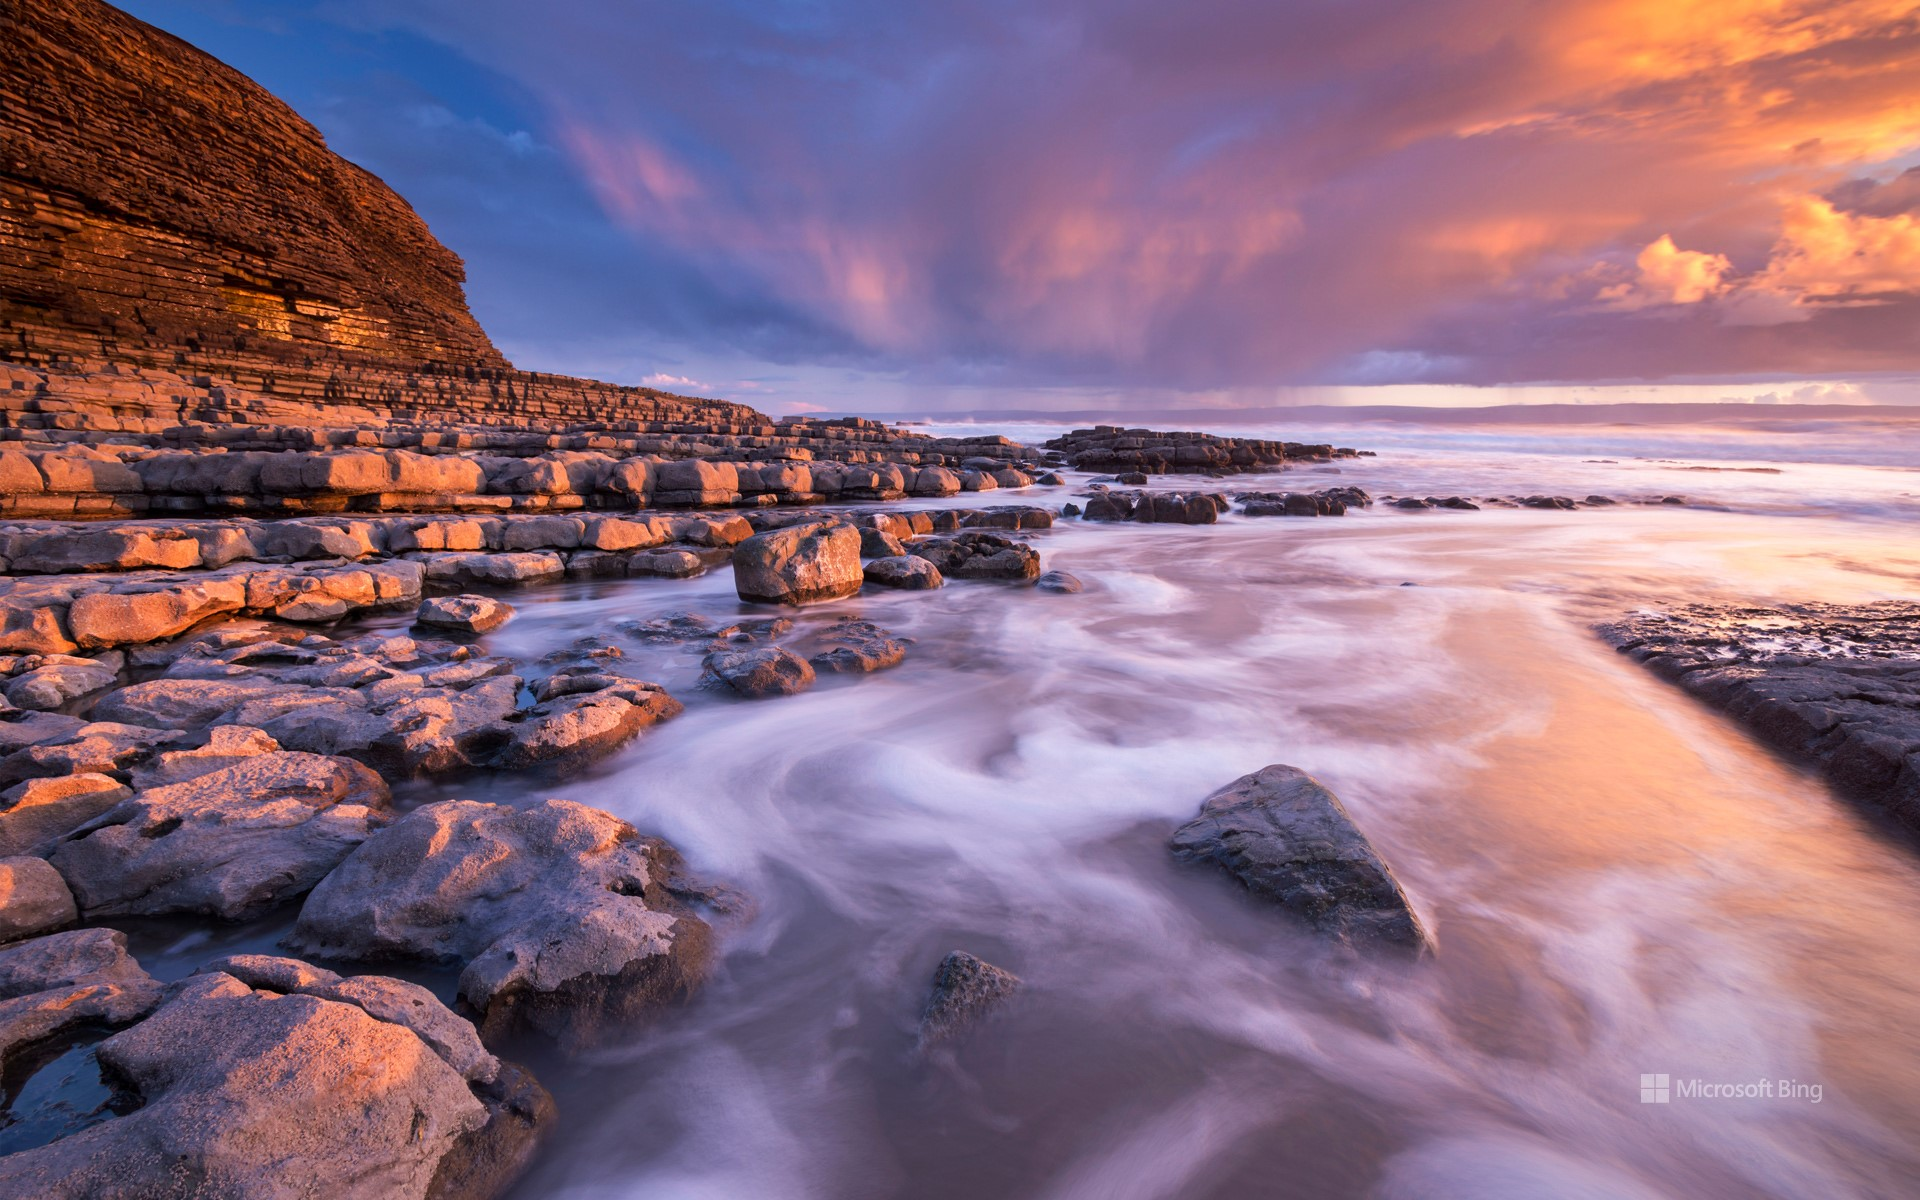 Sunset over Nash Point on the Glamorgan Heritage Coast, South Wales in winter.